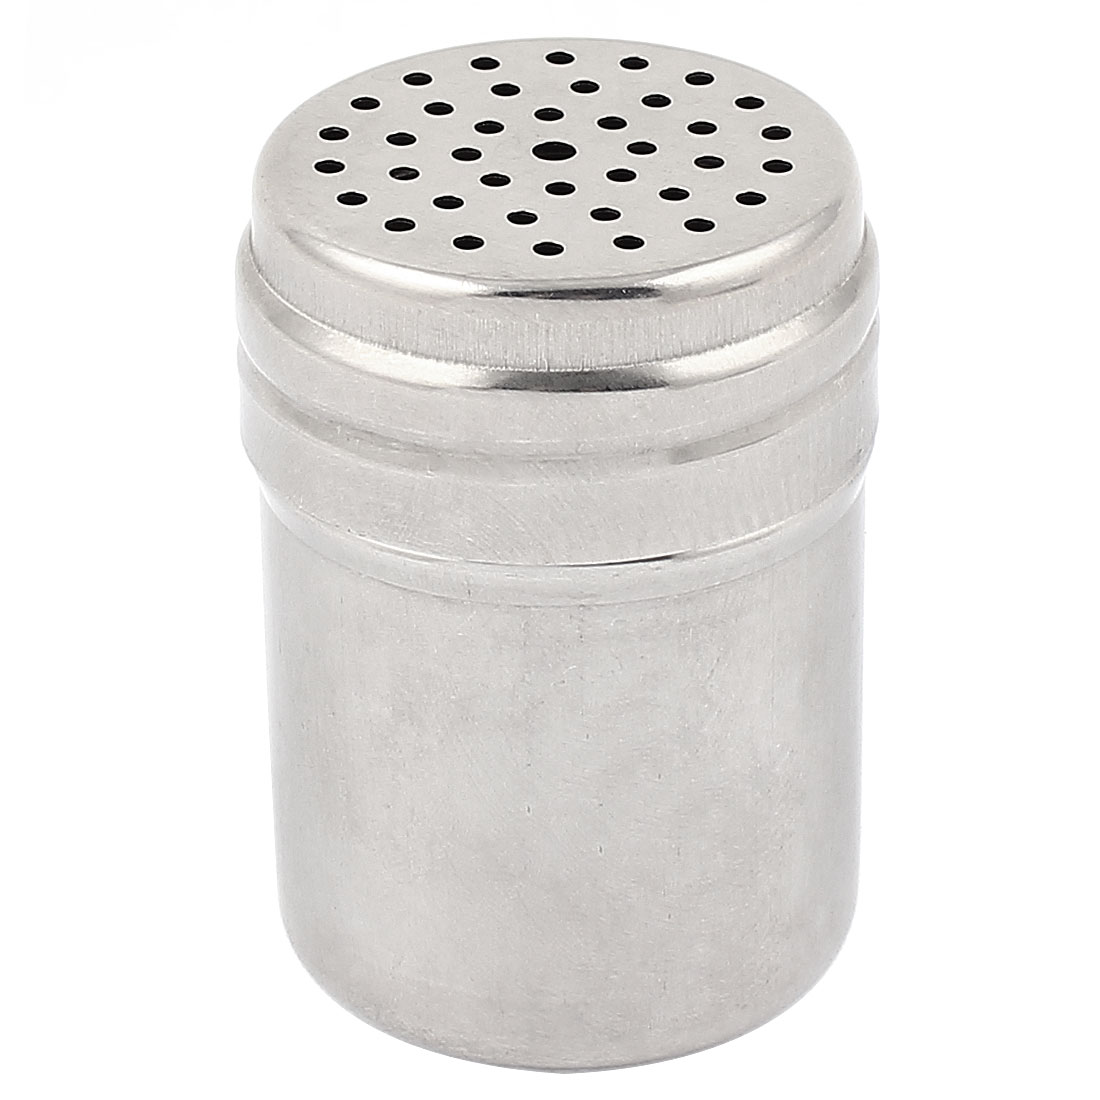 "Stainless Steel Cylindrical Toothpick Holder Container Box Dispenser 3"" x 2"""